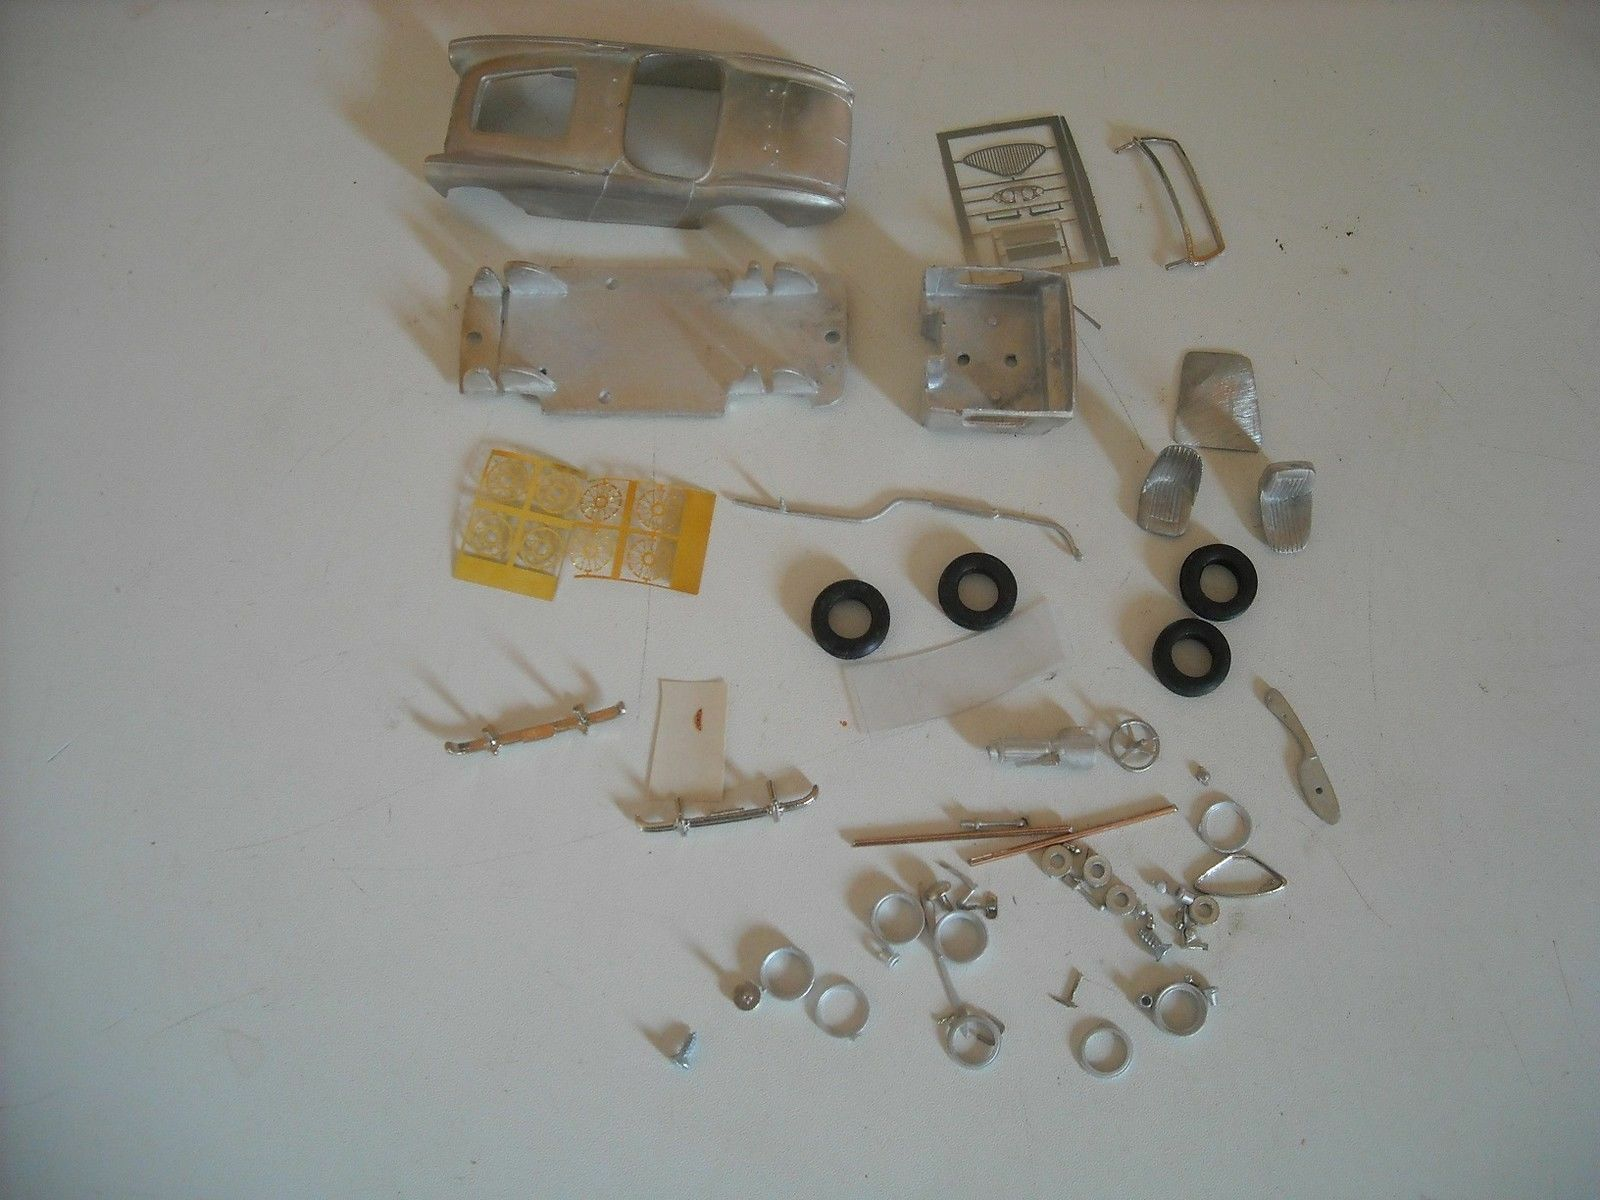 Austin Healey 100 4 BN1 BN2 100M in 1 43rd scale kit by K & R Replicas